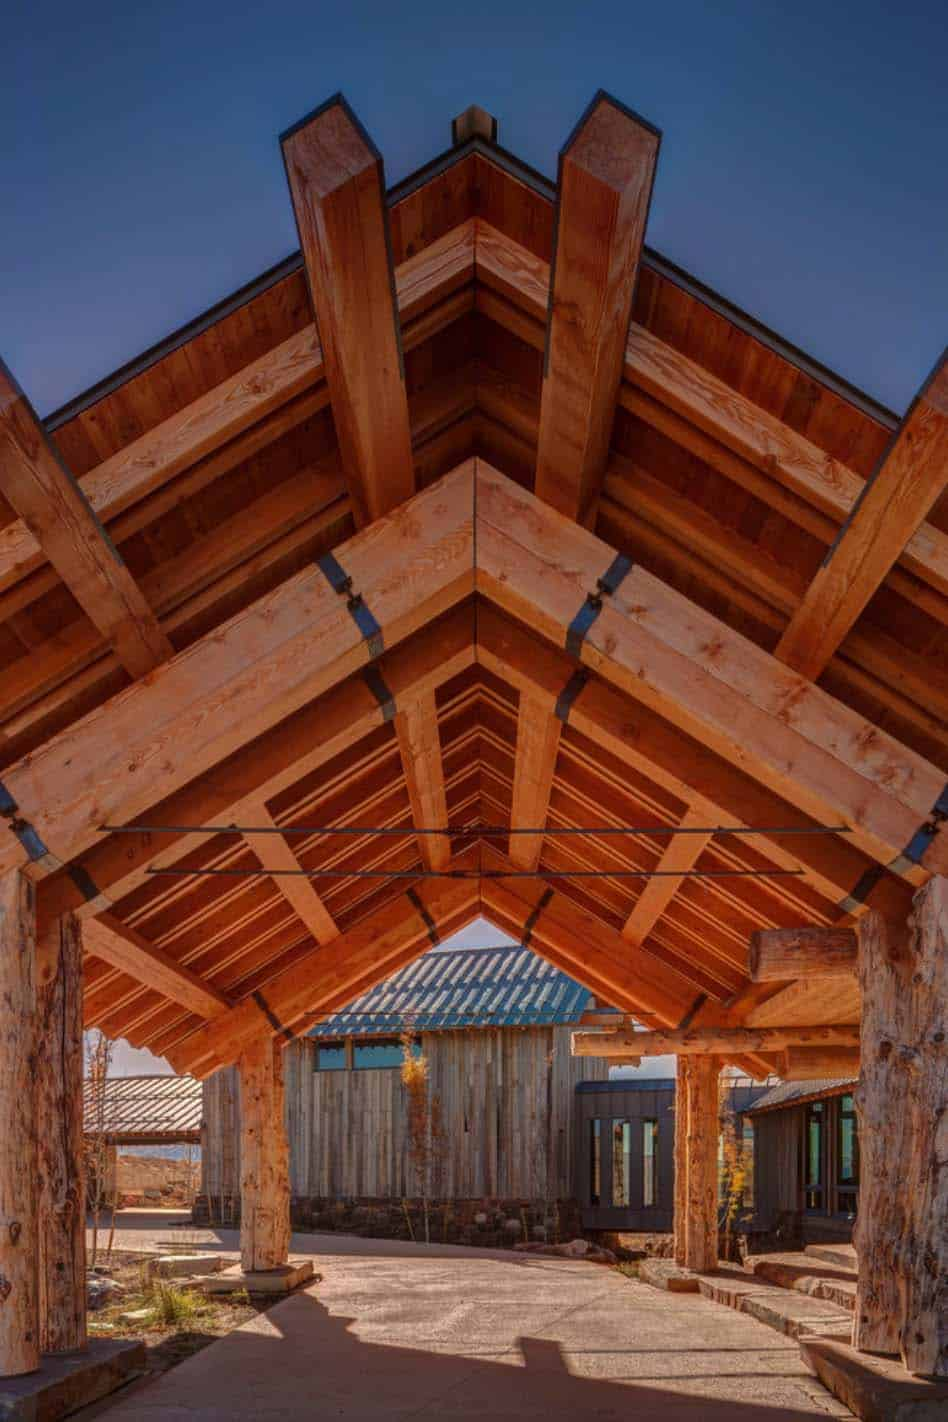 Modern Rustic Log Home-Shubin Donaldson Architects-07-1 Kindesign